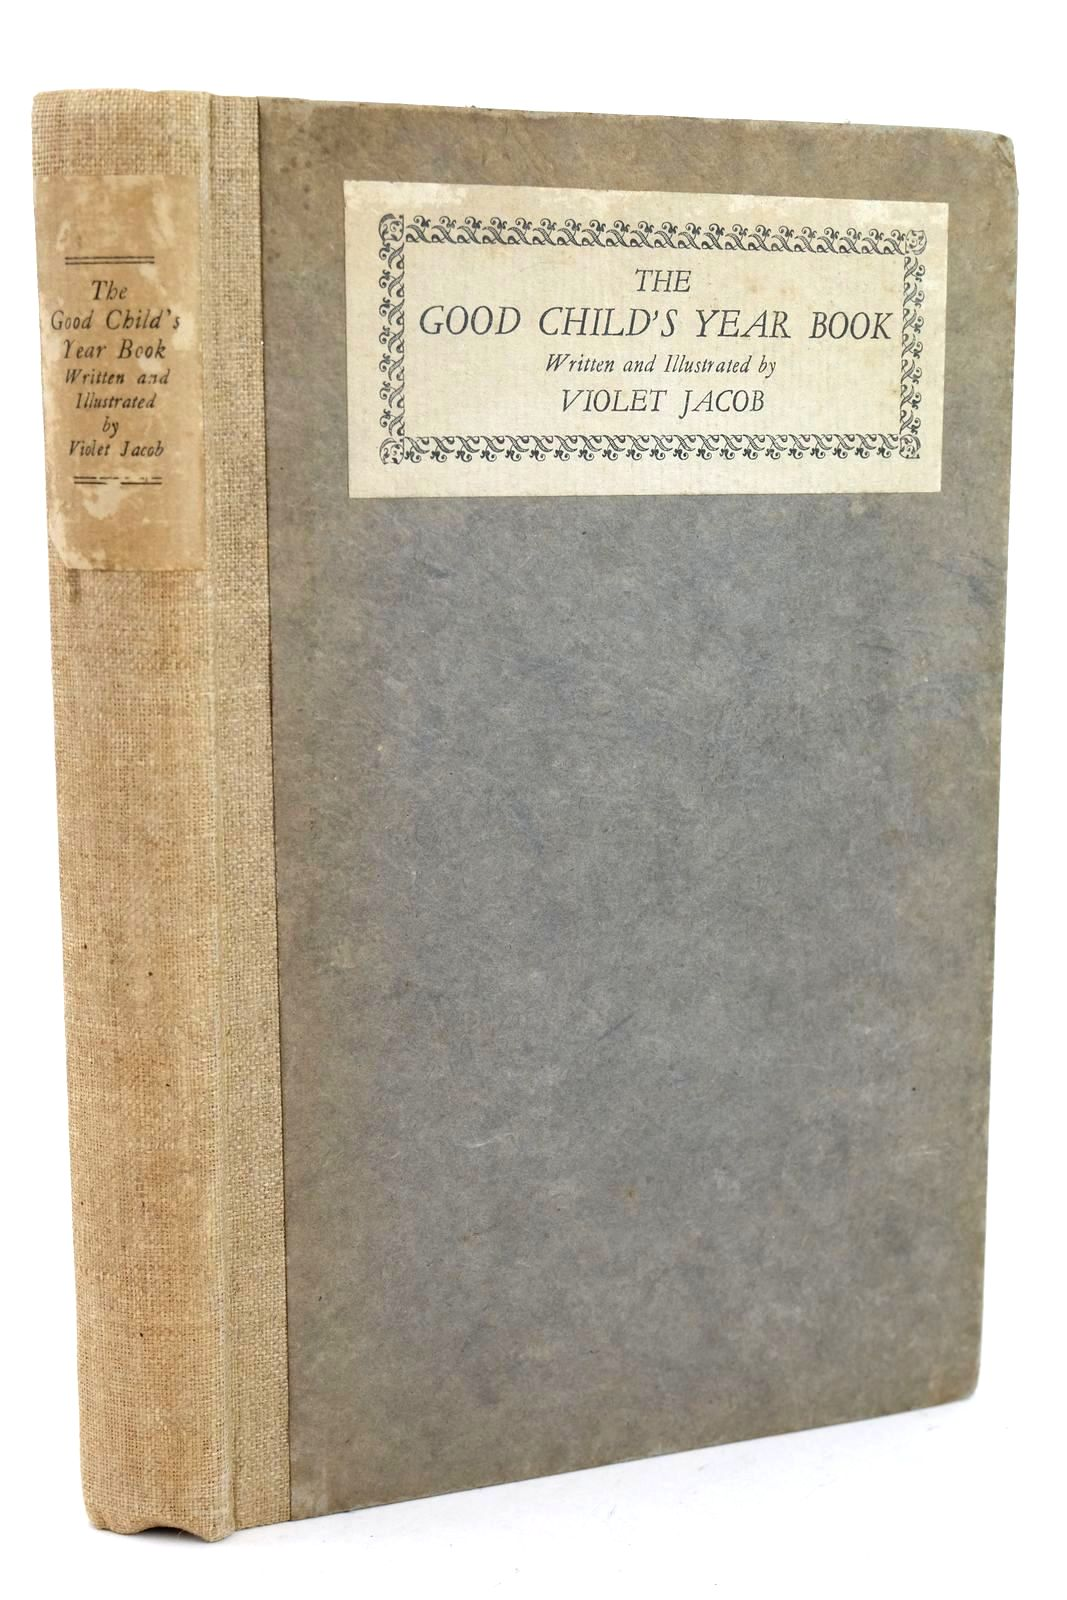 Photo of THE GOOD CHILD'S YEAR BOOK written by Jacob, Violet illustrated by Jacob, Violet published by Foulis (STOCK CODE: 1318654)  for sale by Stella & Rose's Books